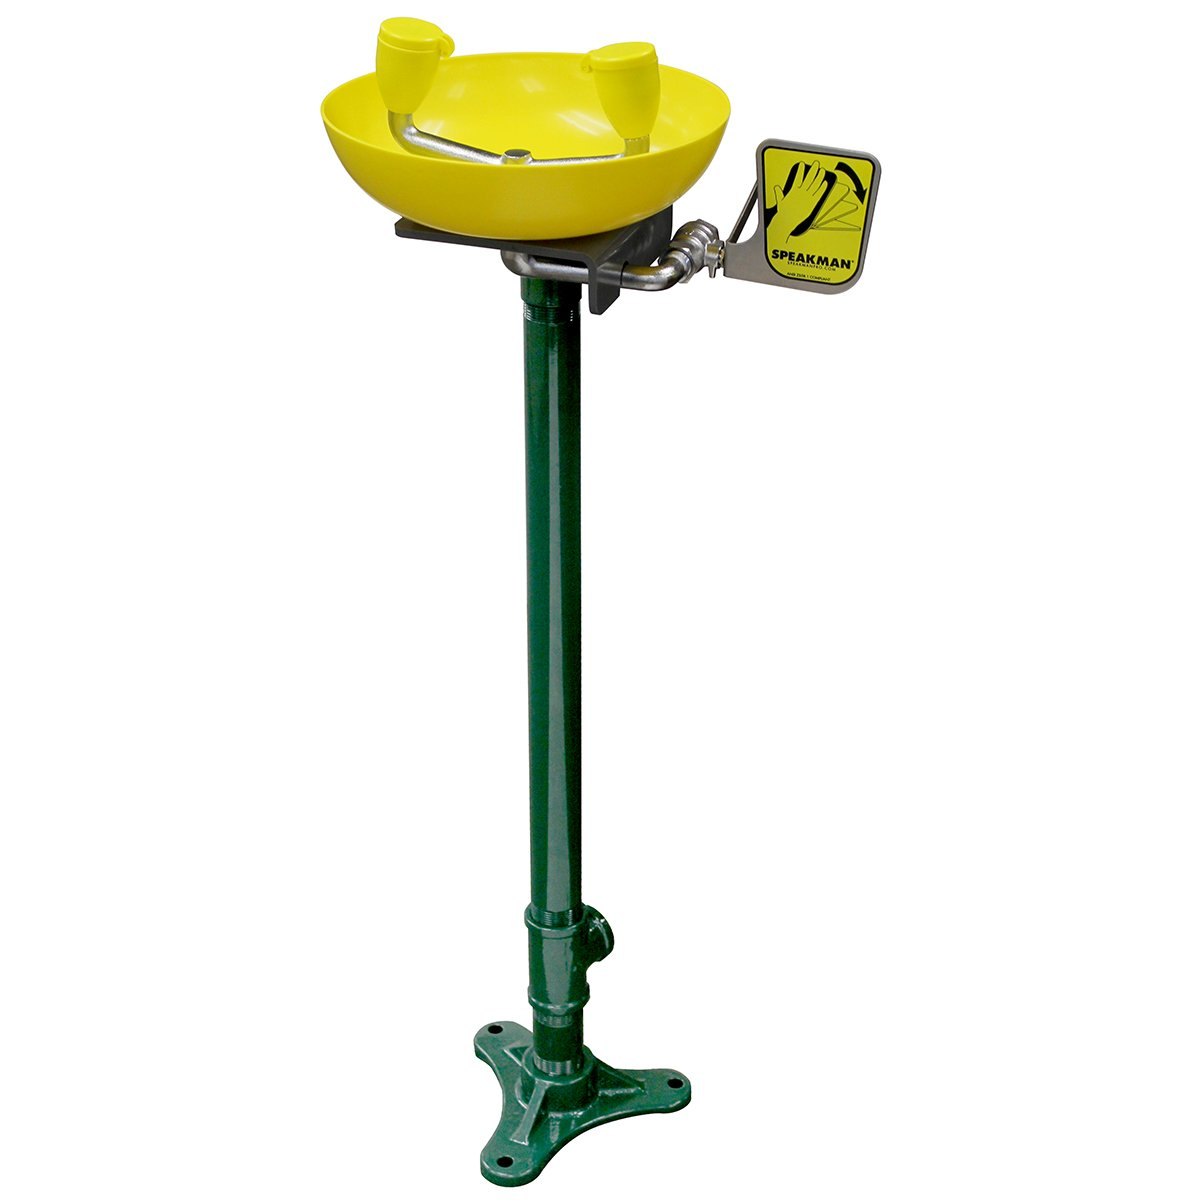 Speakman SE-583 Traditional Series Pedestal-Mounted Emergency Eyewash, Yellow by Speakman